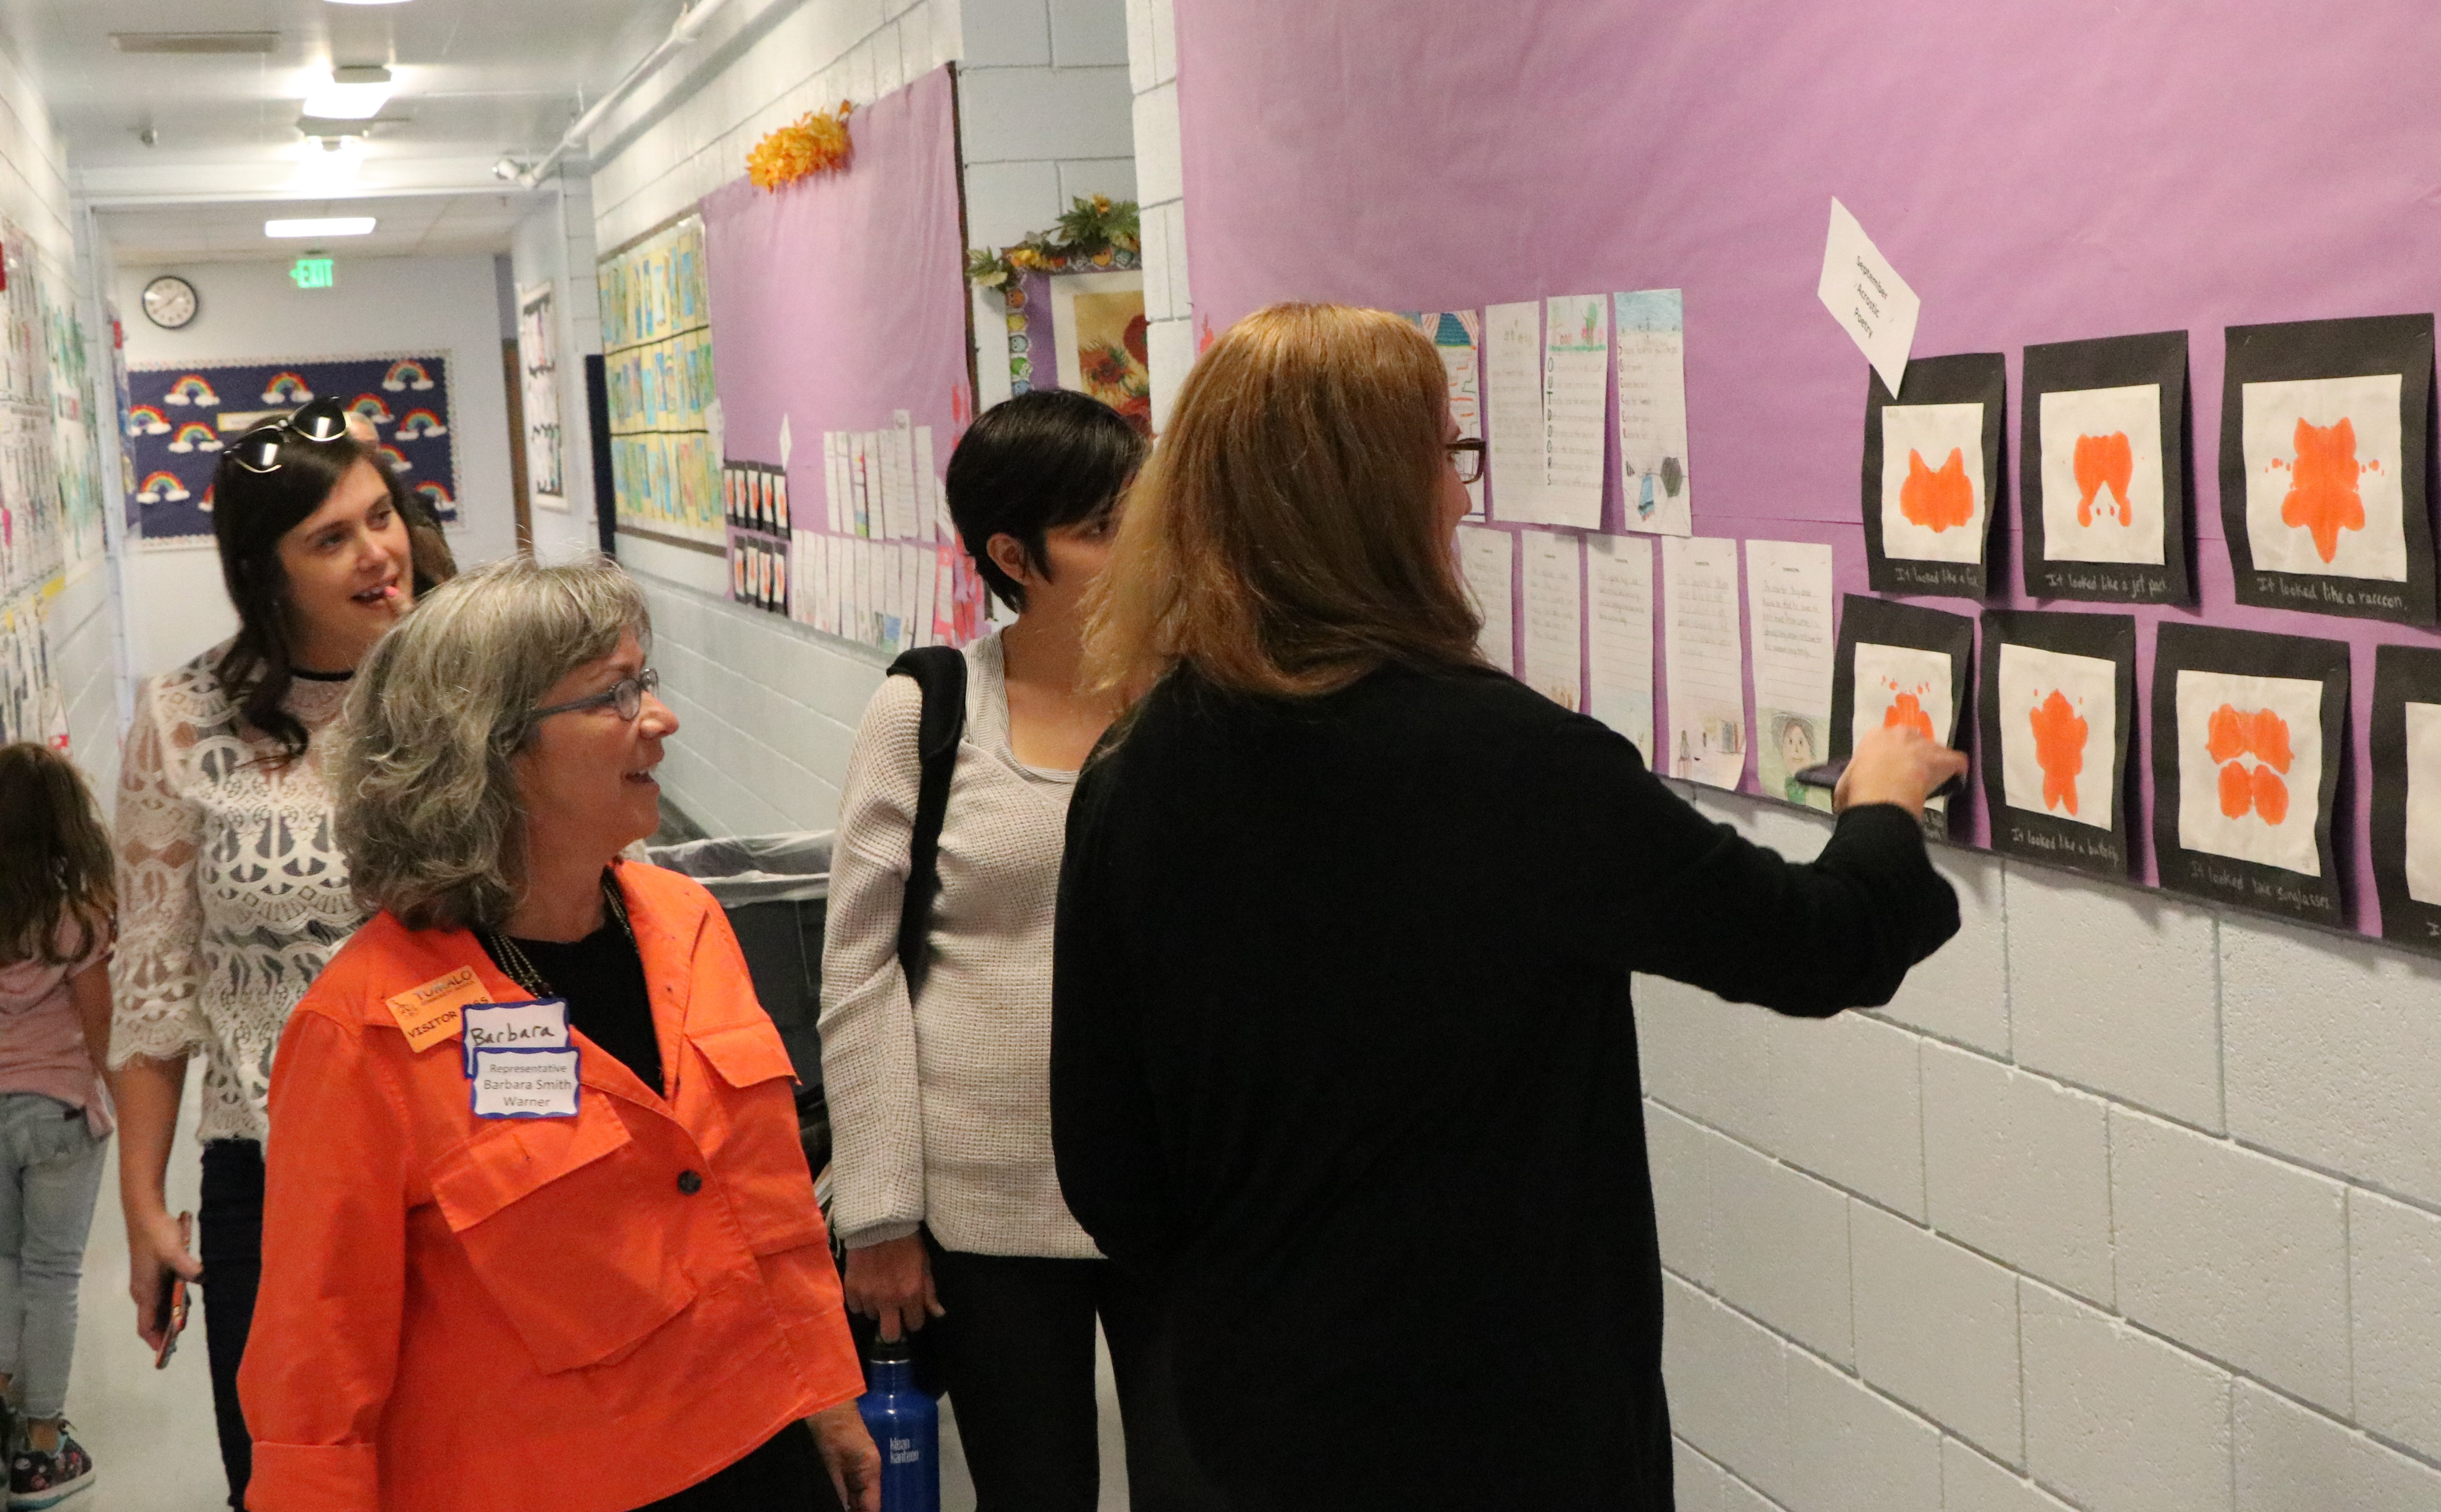 Rep. Barbara Smith Warner, D-Portland, and Rep. Julie Fahey, D-Eugene, admire student art during a tour of Tumalo Community School.